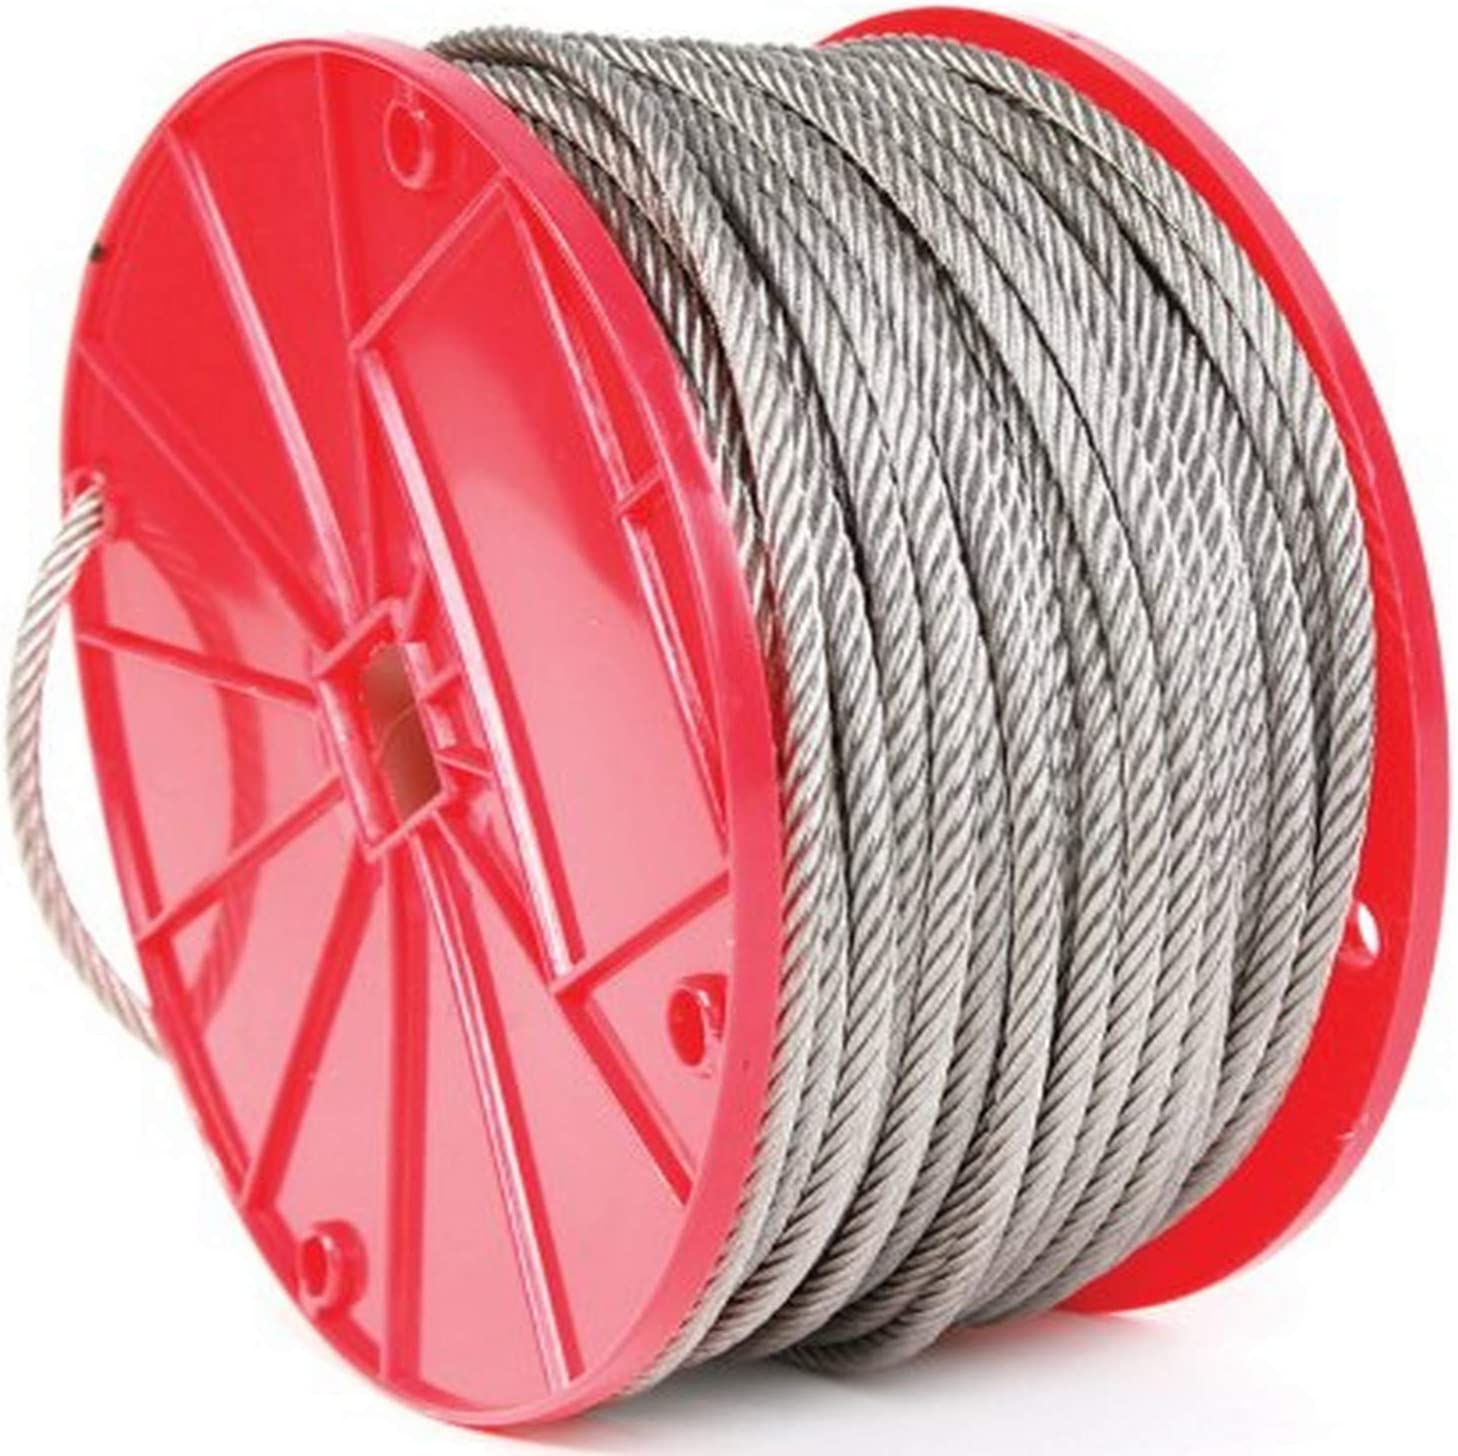 Koch 015021 Cable Industry No. Max 50% OFF 1 7 by Construction 125 F Size Trade 16